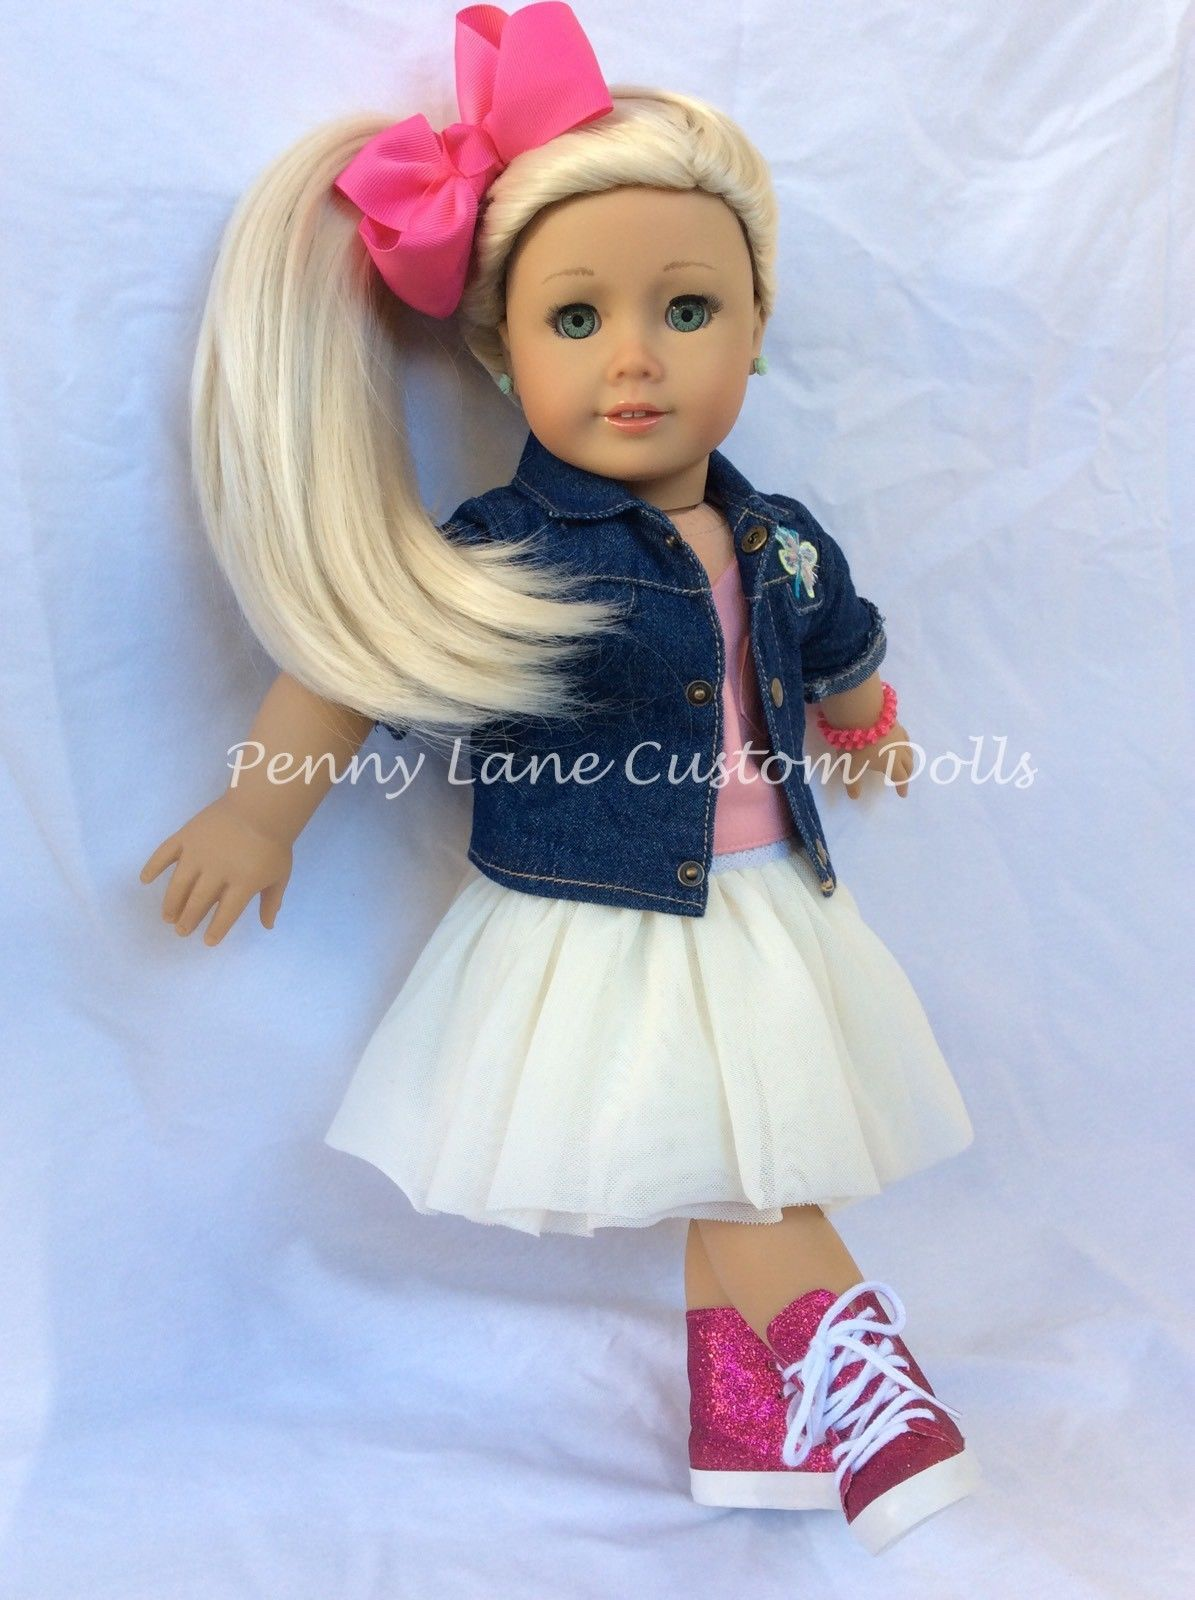 """Pink Heart Print Tights 18/"""" Doll Clothes Fit American Girl Dolls"""